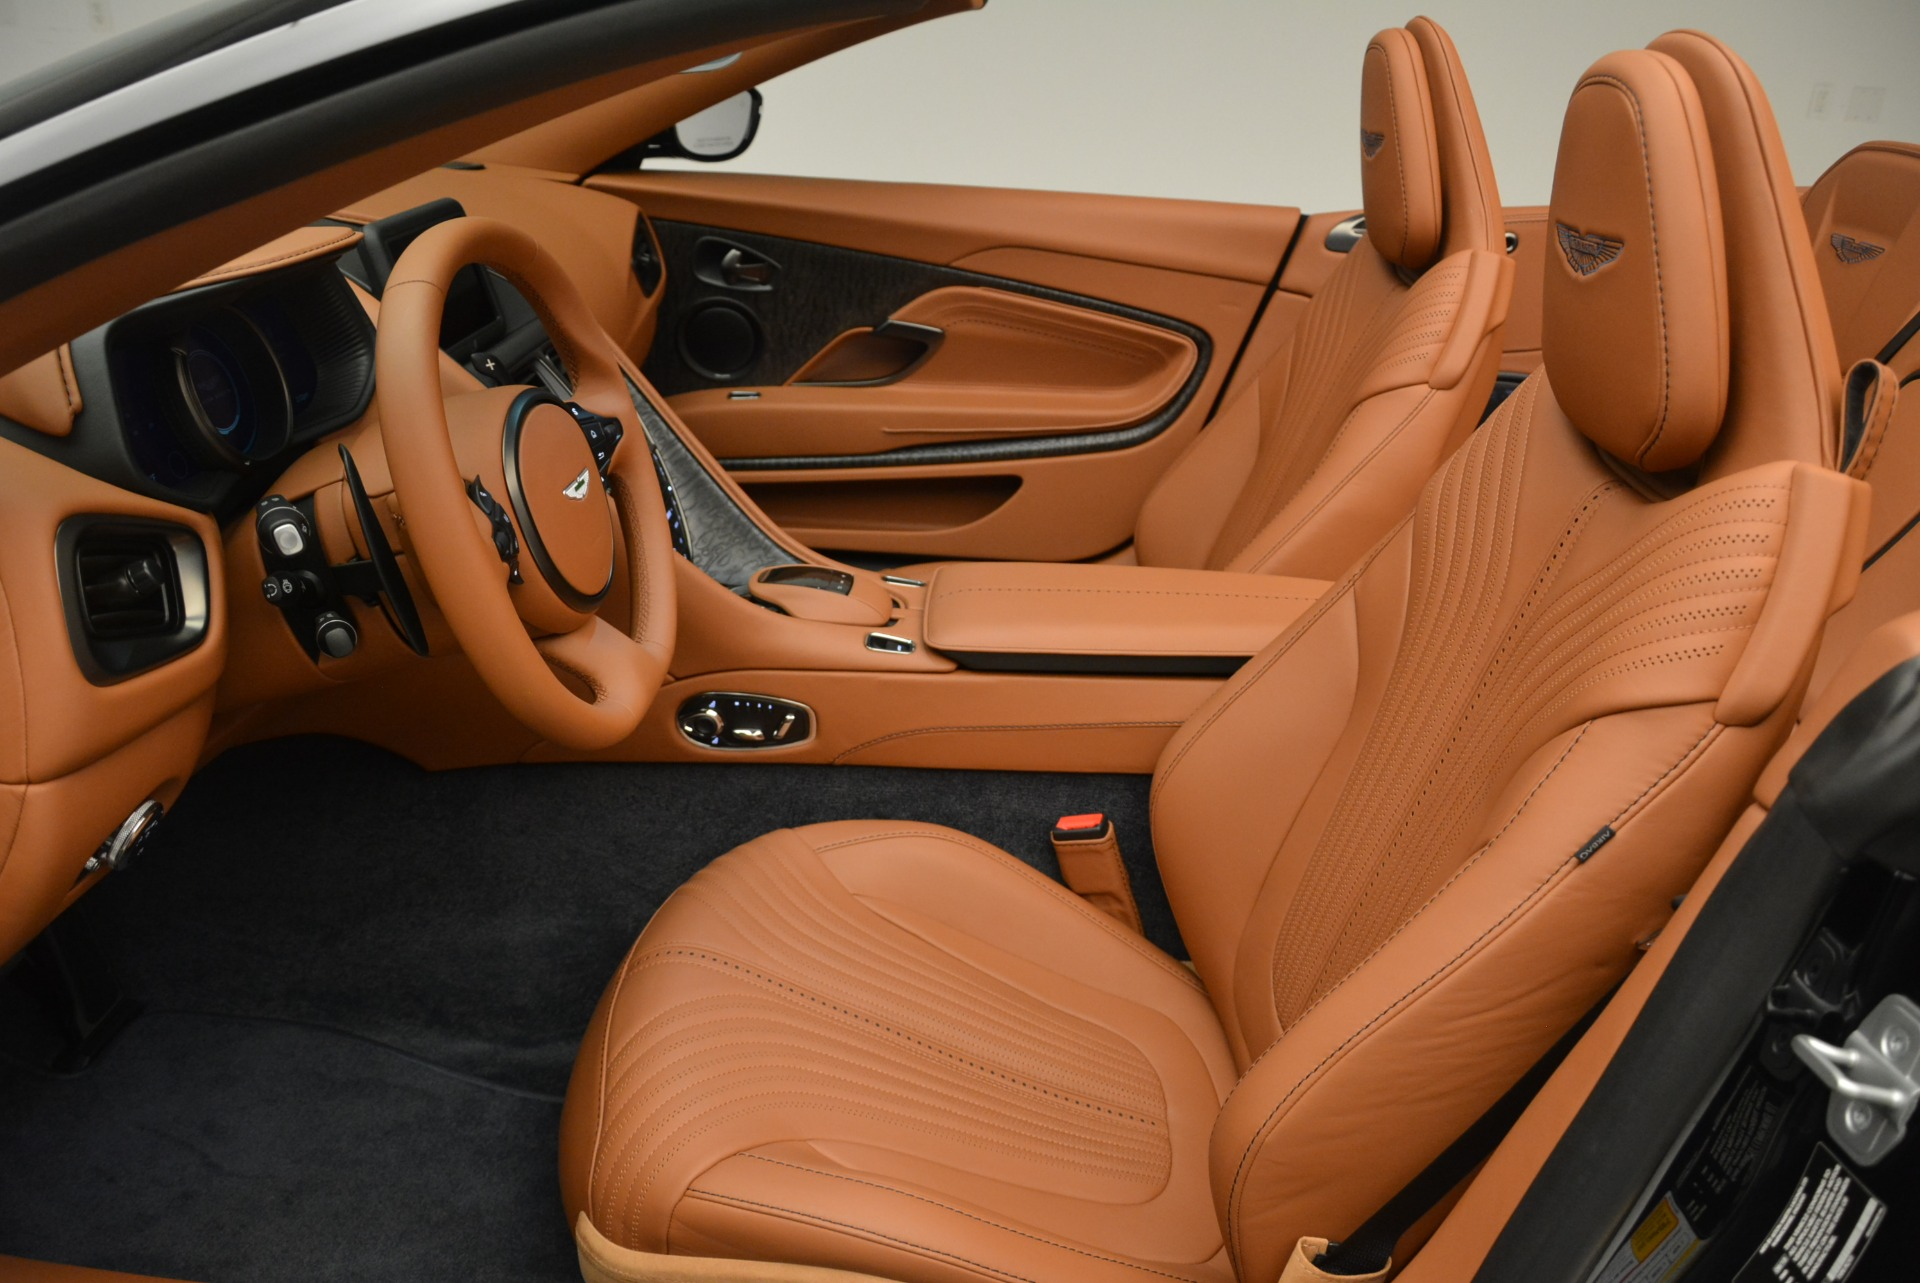 New 2019 Aston Martin DB11 Volante Volante For Sale In Greenwich, CT 2450_p20